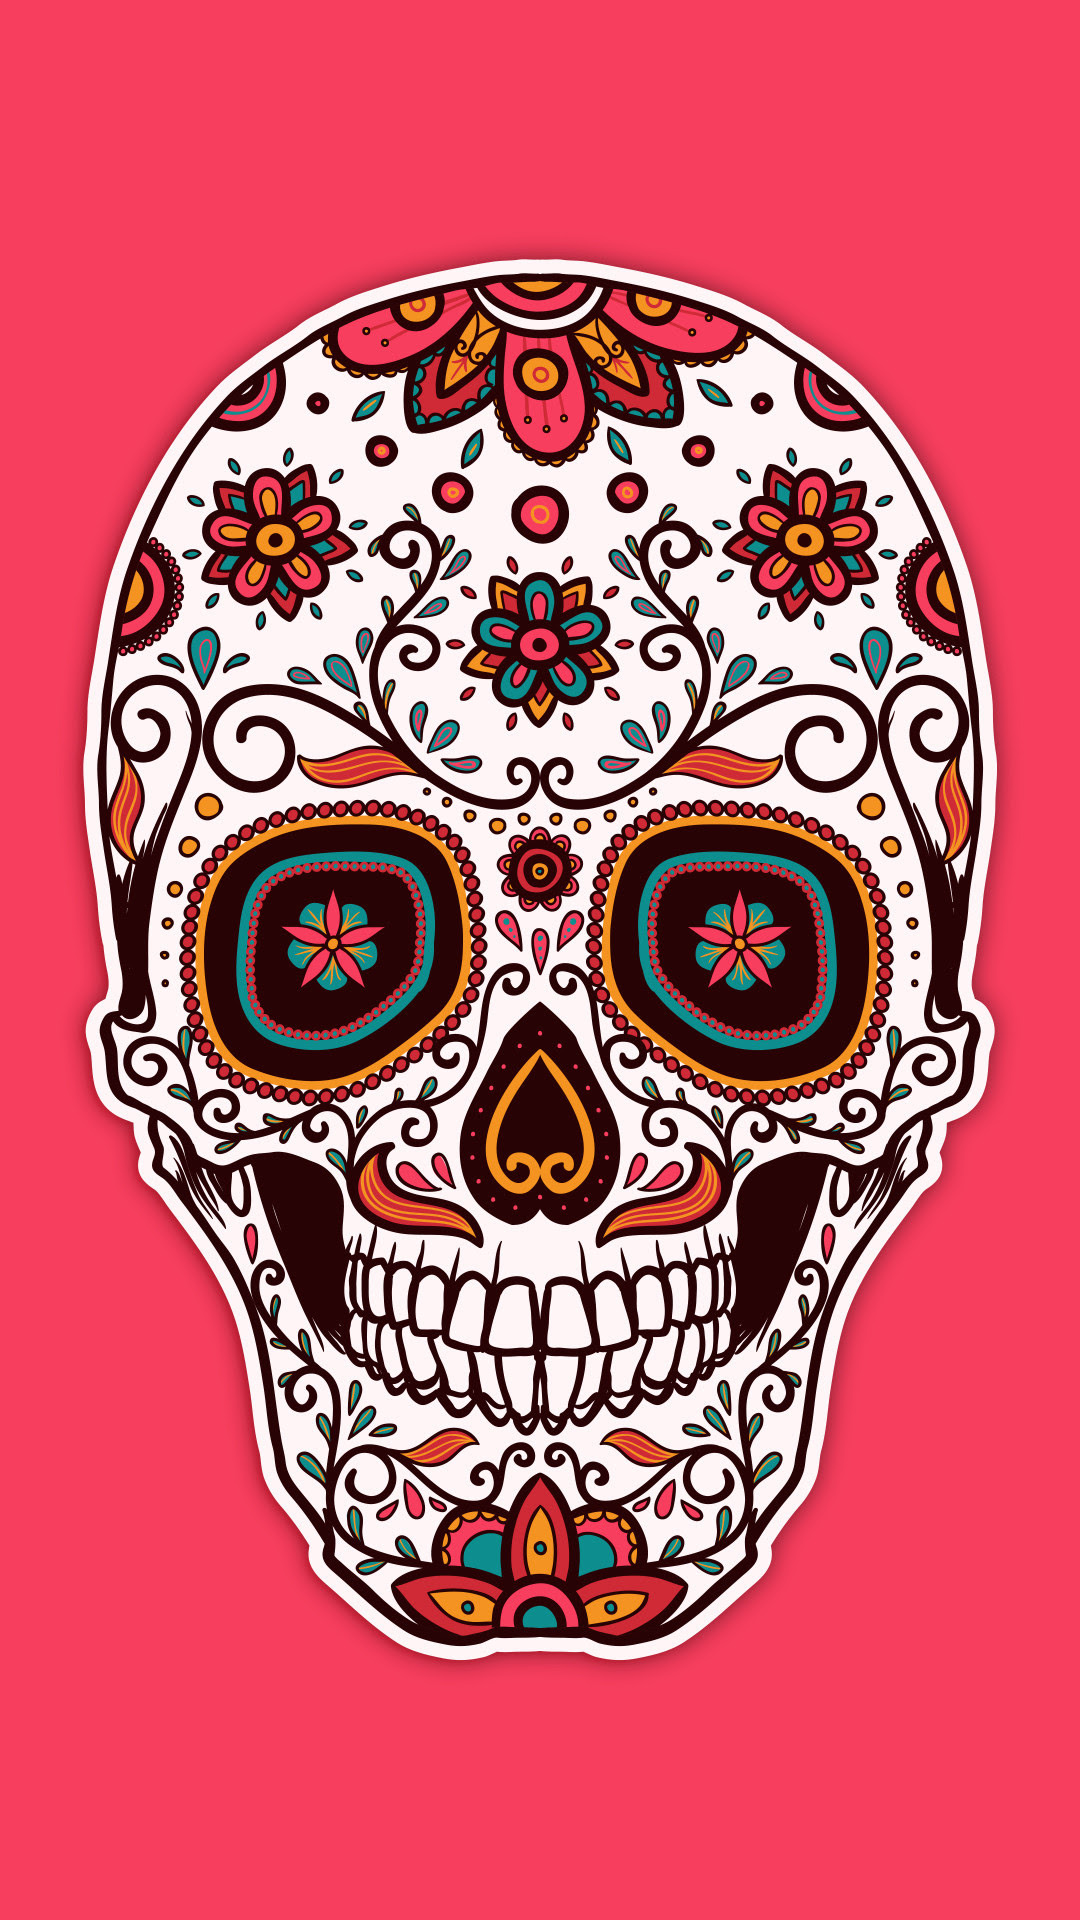 Sugar Skull Wallpaper for iPhone (62+ images)